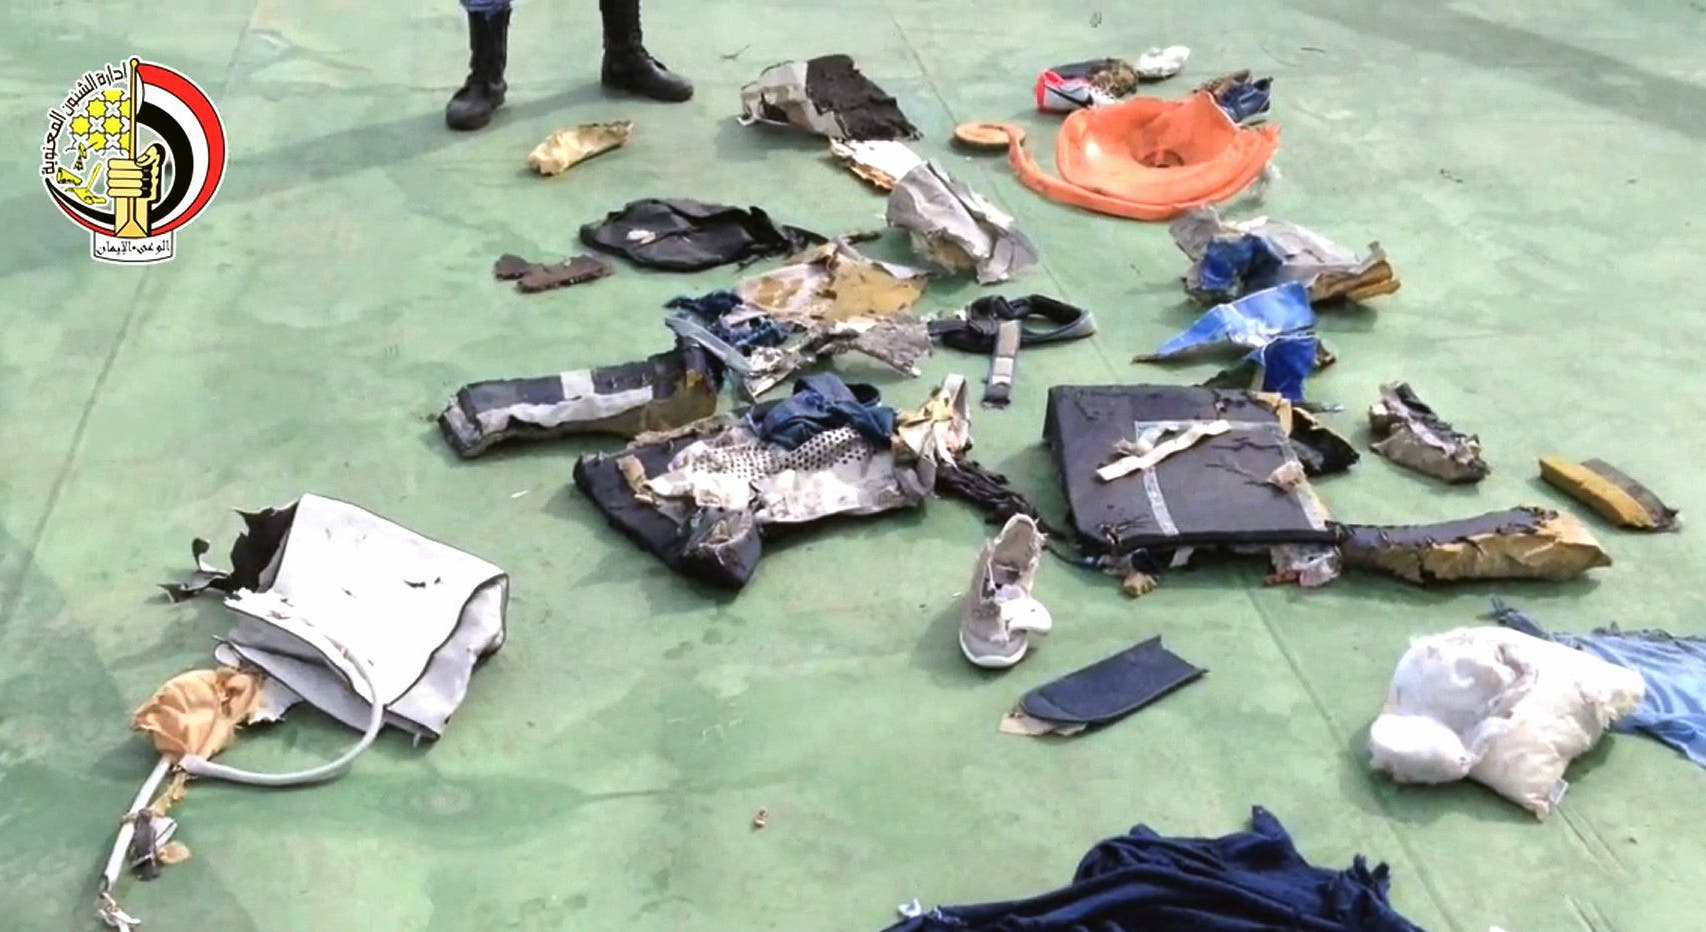 An image grab from Egypt's military on May 21, 2016 shows some debris that the search teams found in the sea after the EgyptAir Airbus A320 crashed in the Mediterranean. (AFP)